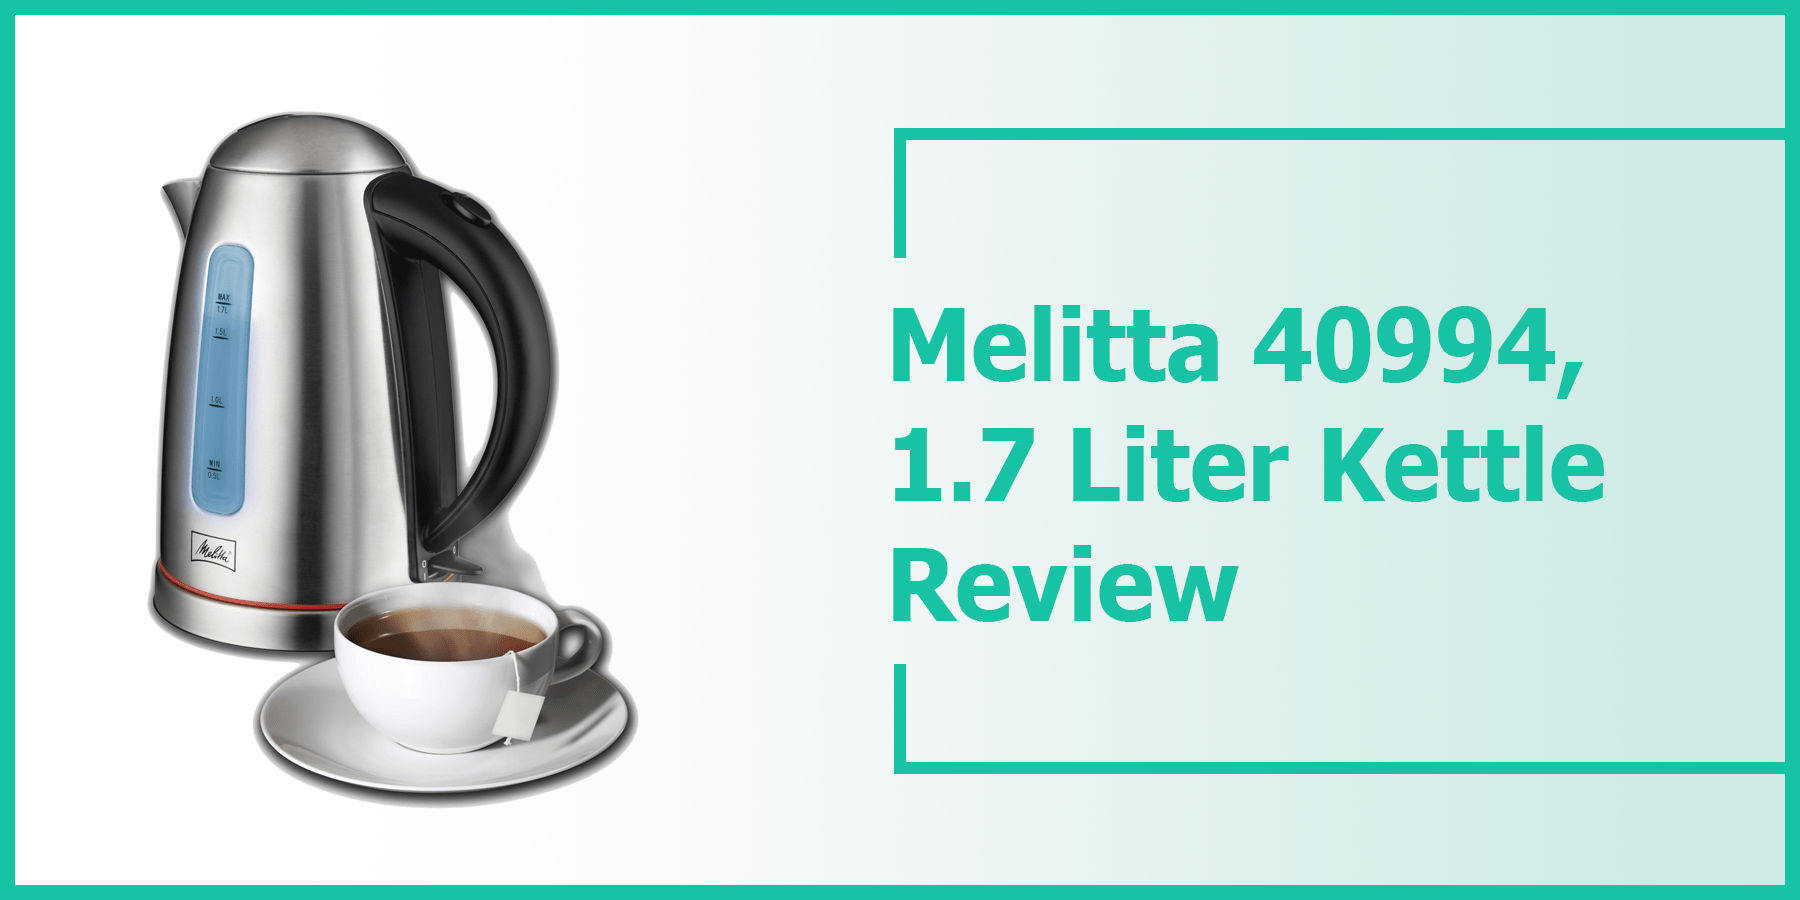 Melitta 40994, 1.7 Liter Kettle Review